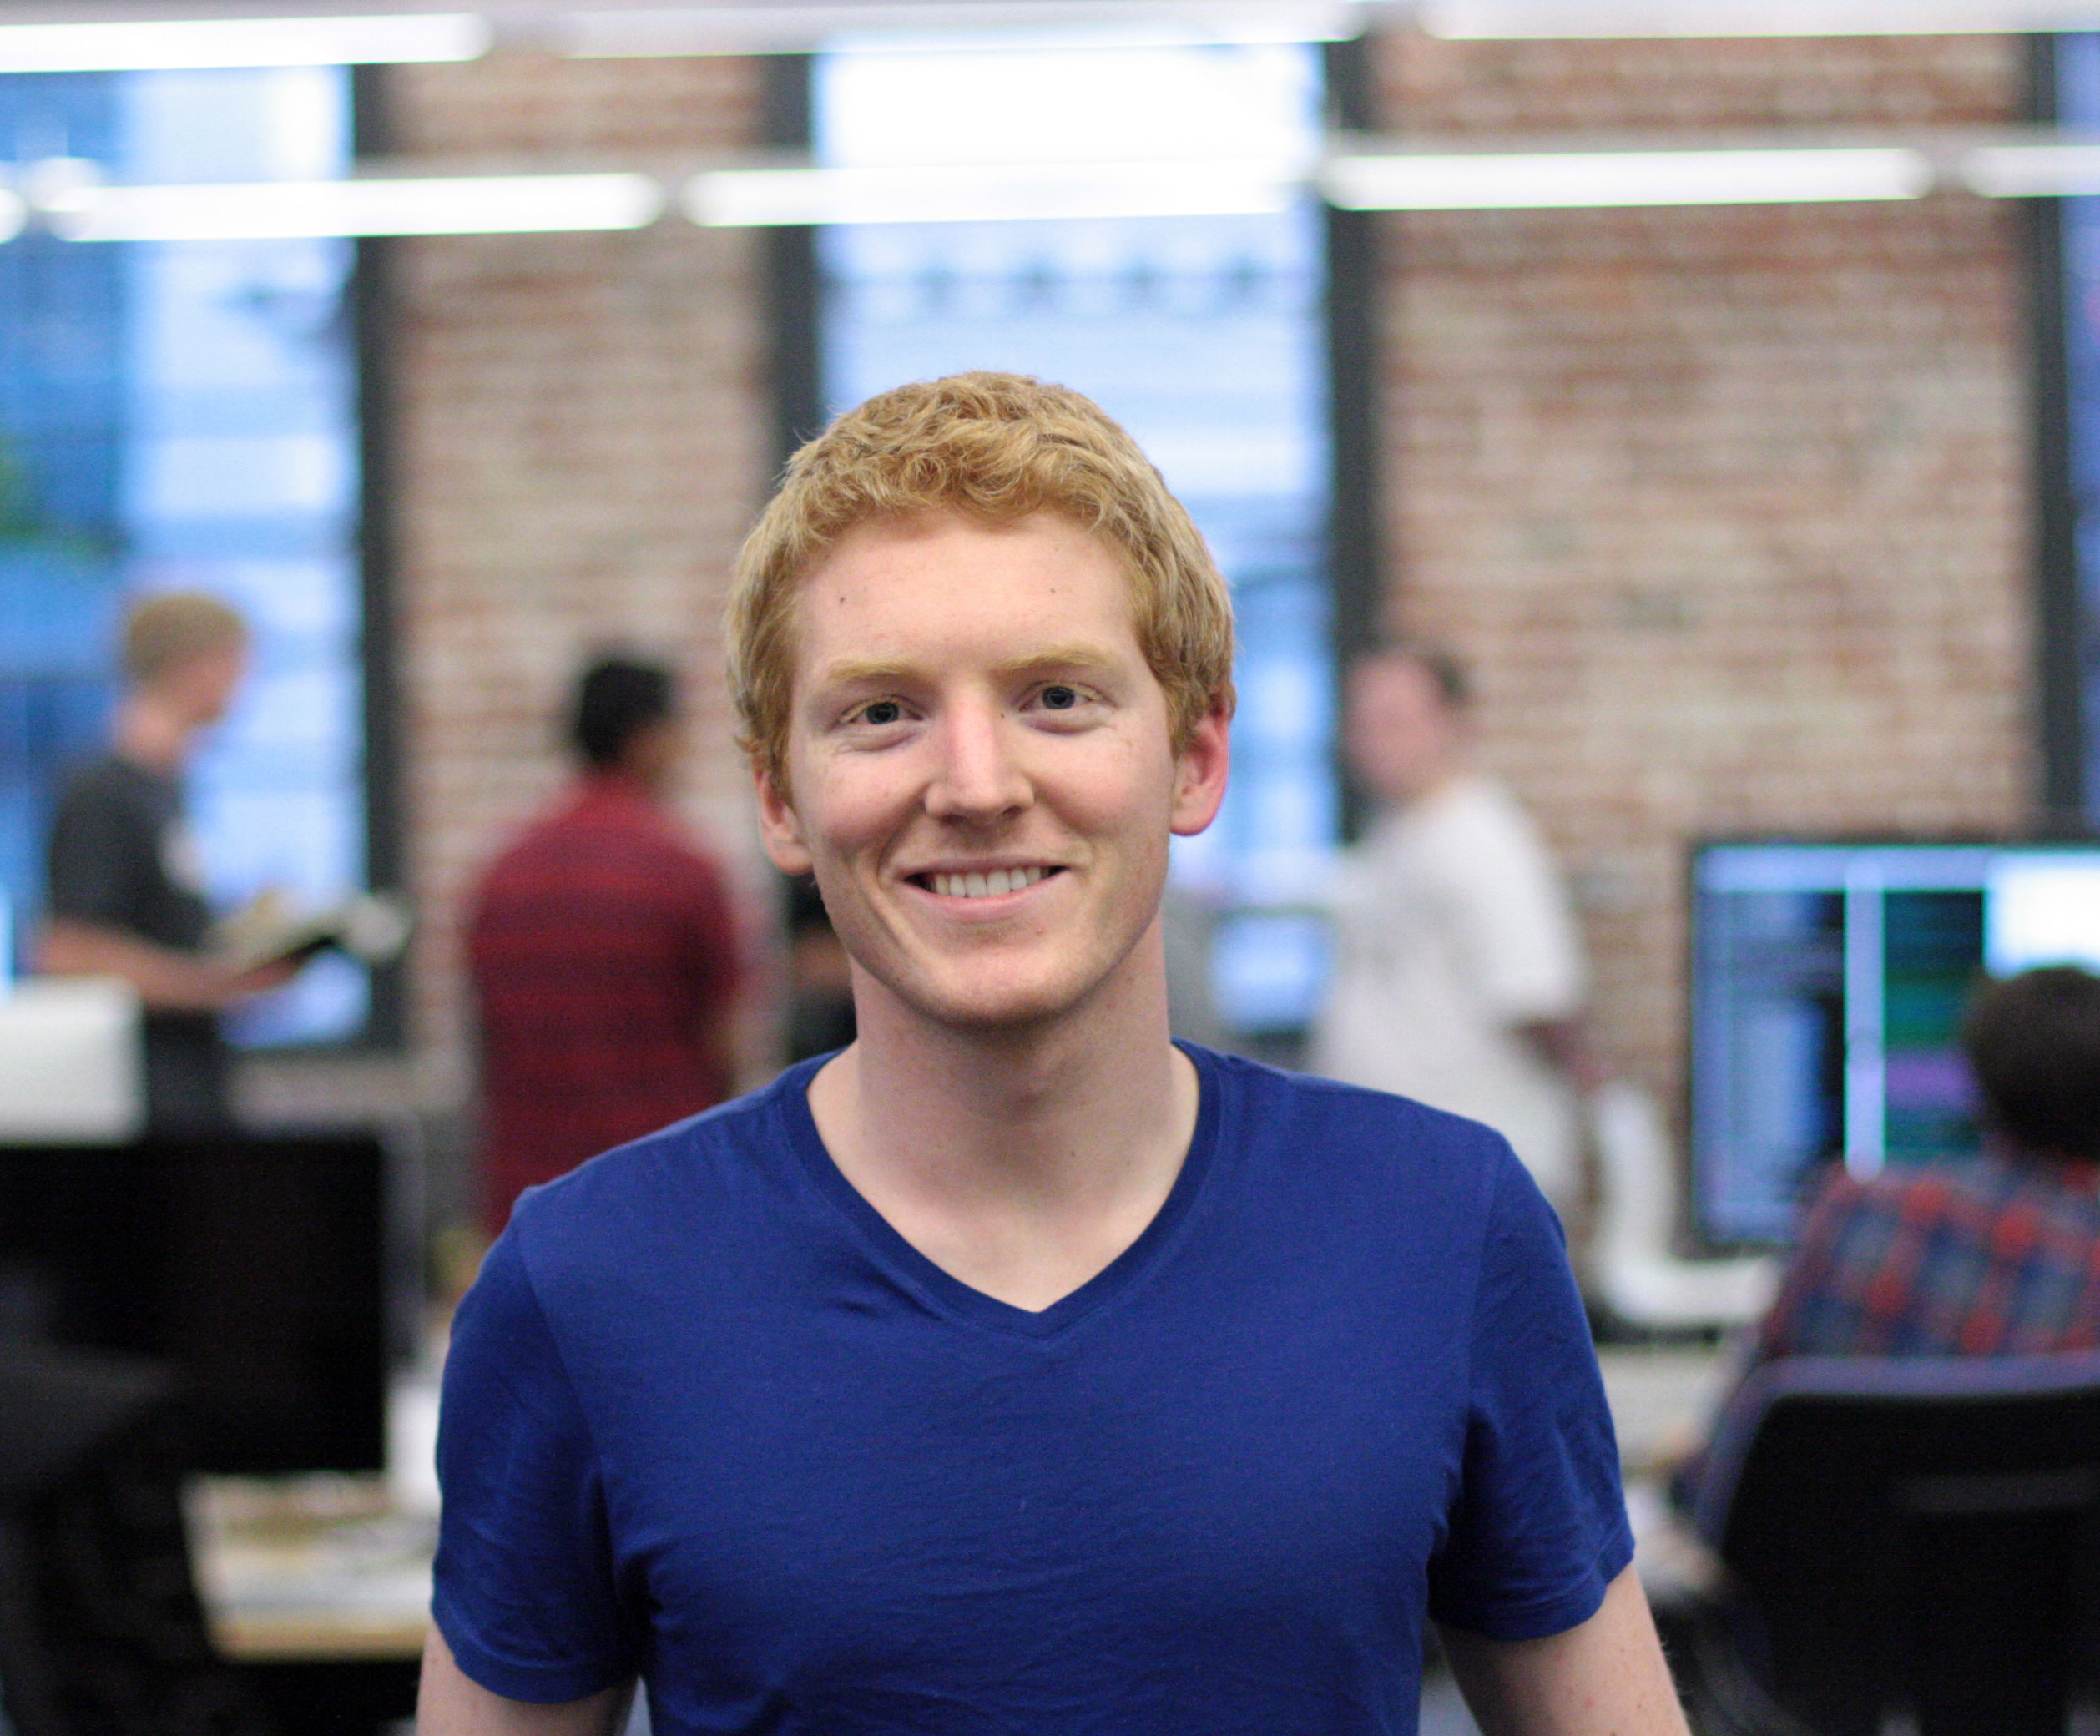 Stripe's Patrick Collison says no to an IPO any time soon | TechCrunch